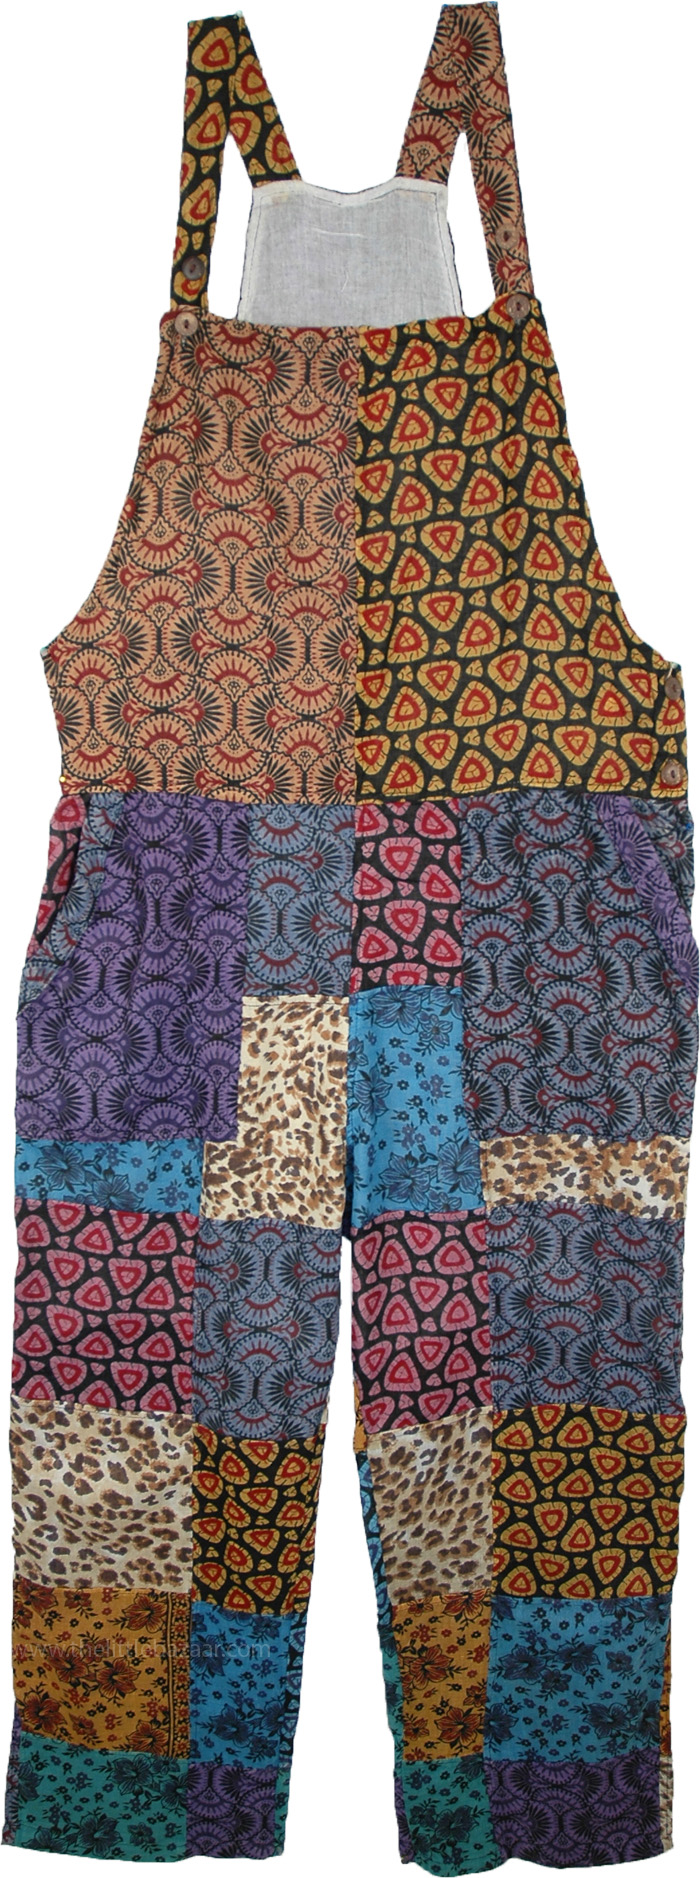 Pixie Print Patchwork Cotton Overalls Dungarees